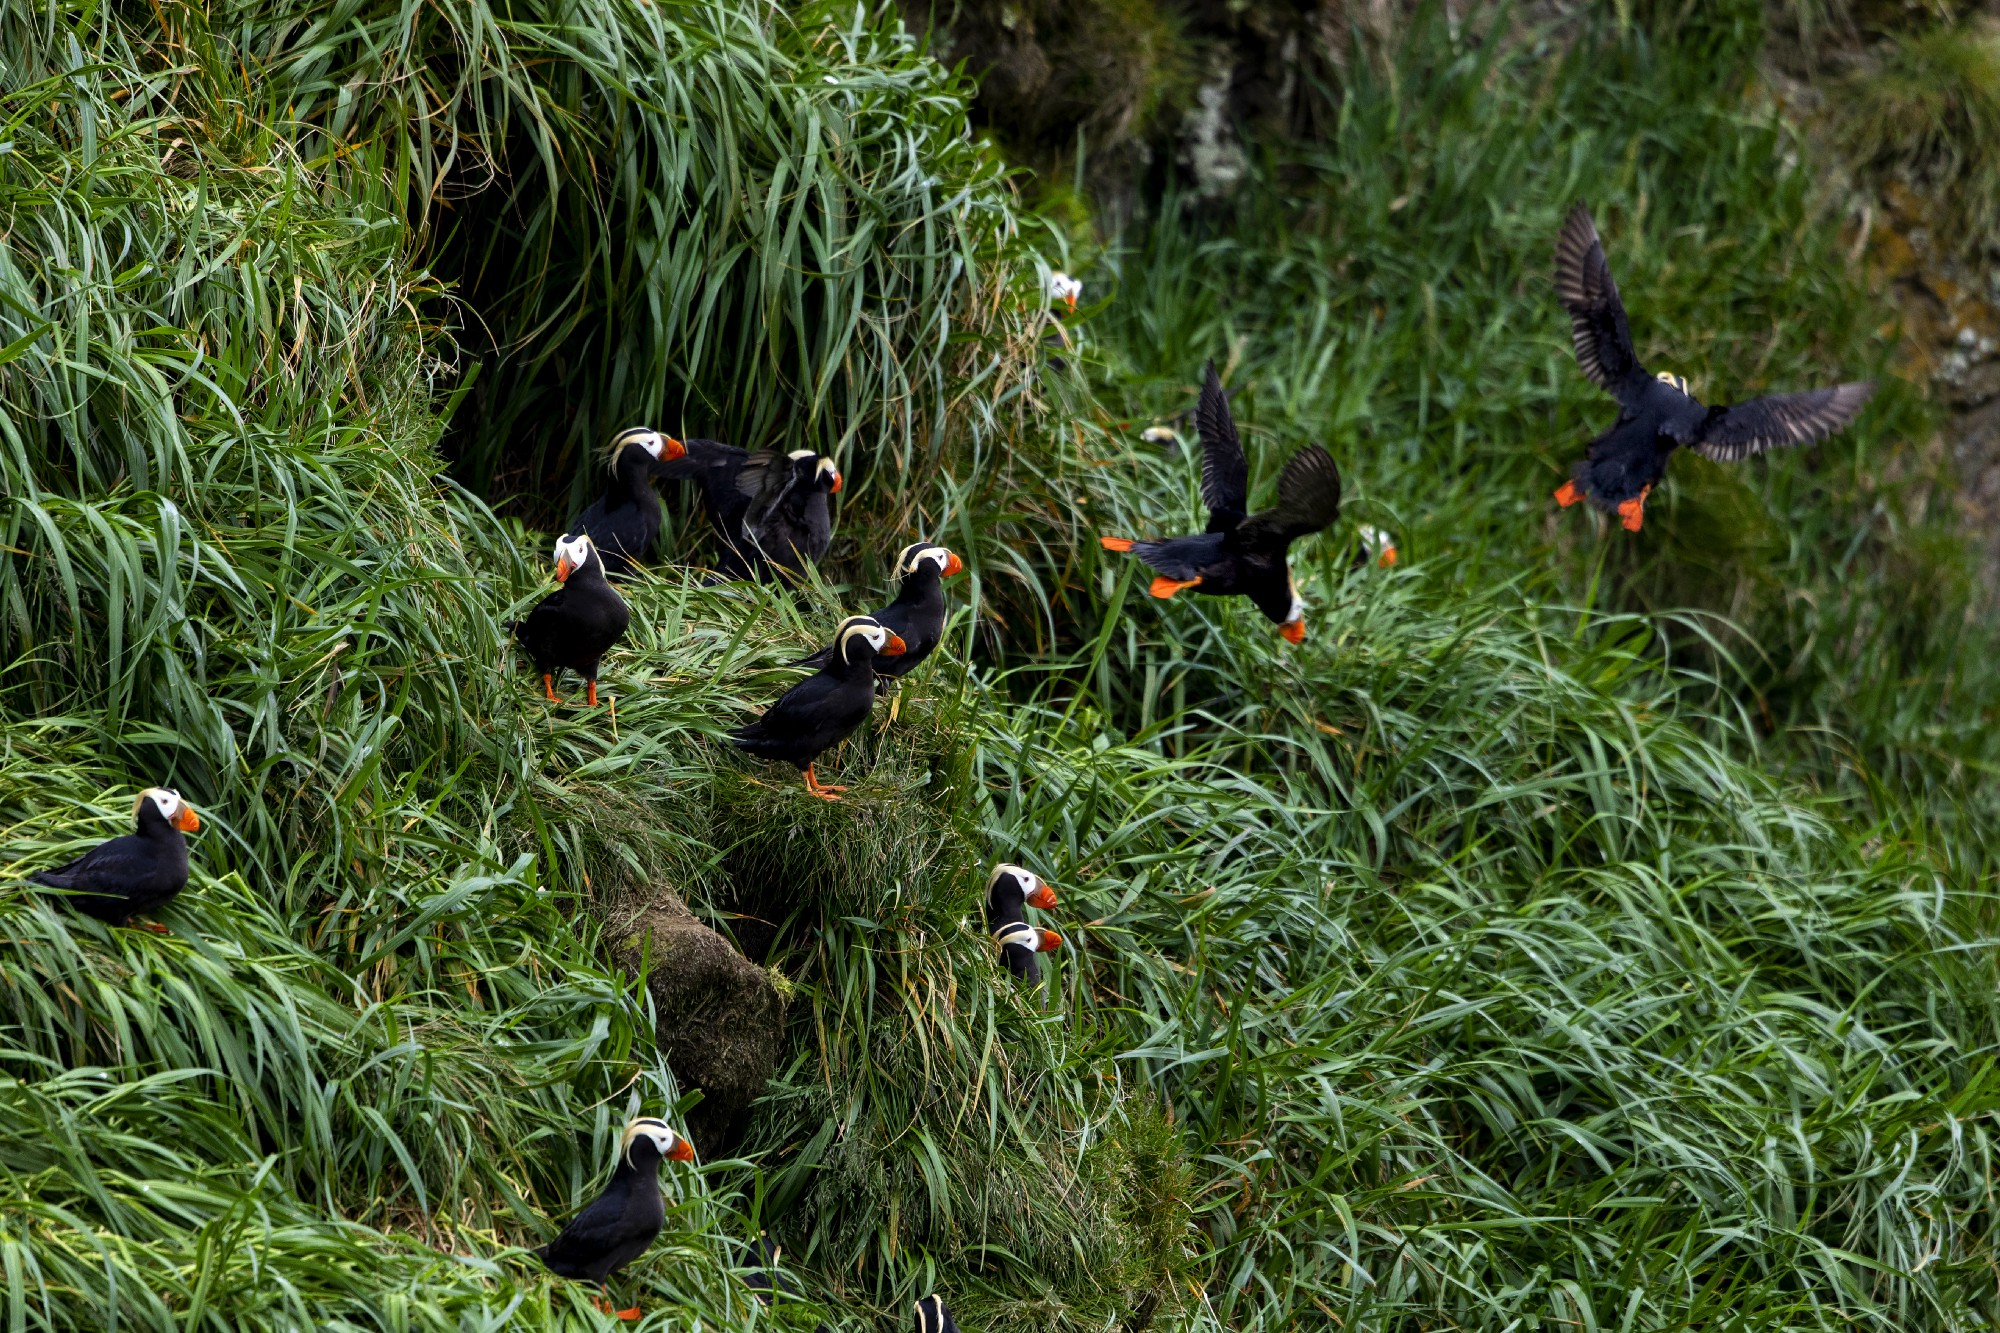 A grassy slope with several openings into burrows, and many tufted puffins sitting outside or in flight.